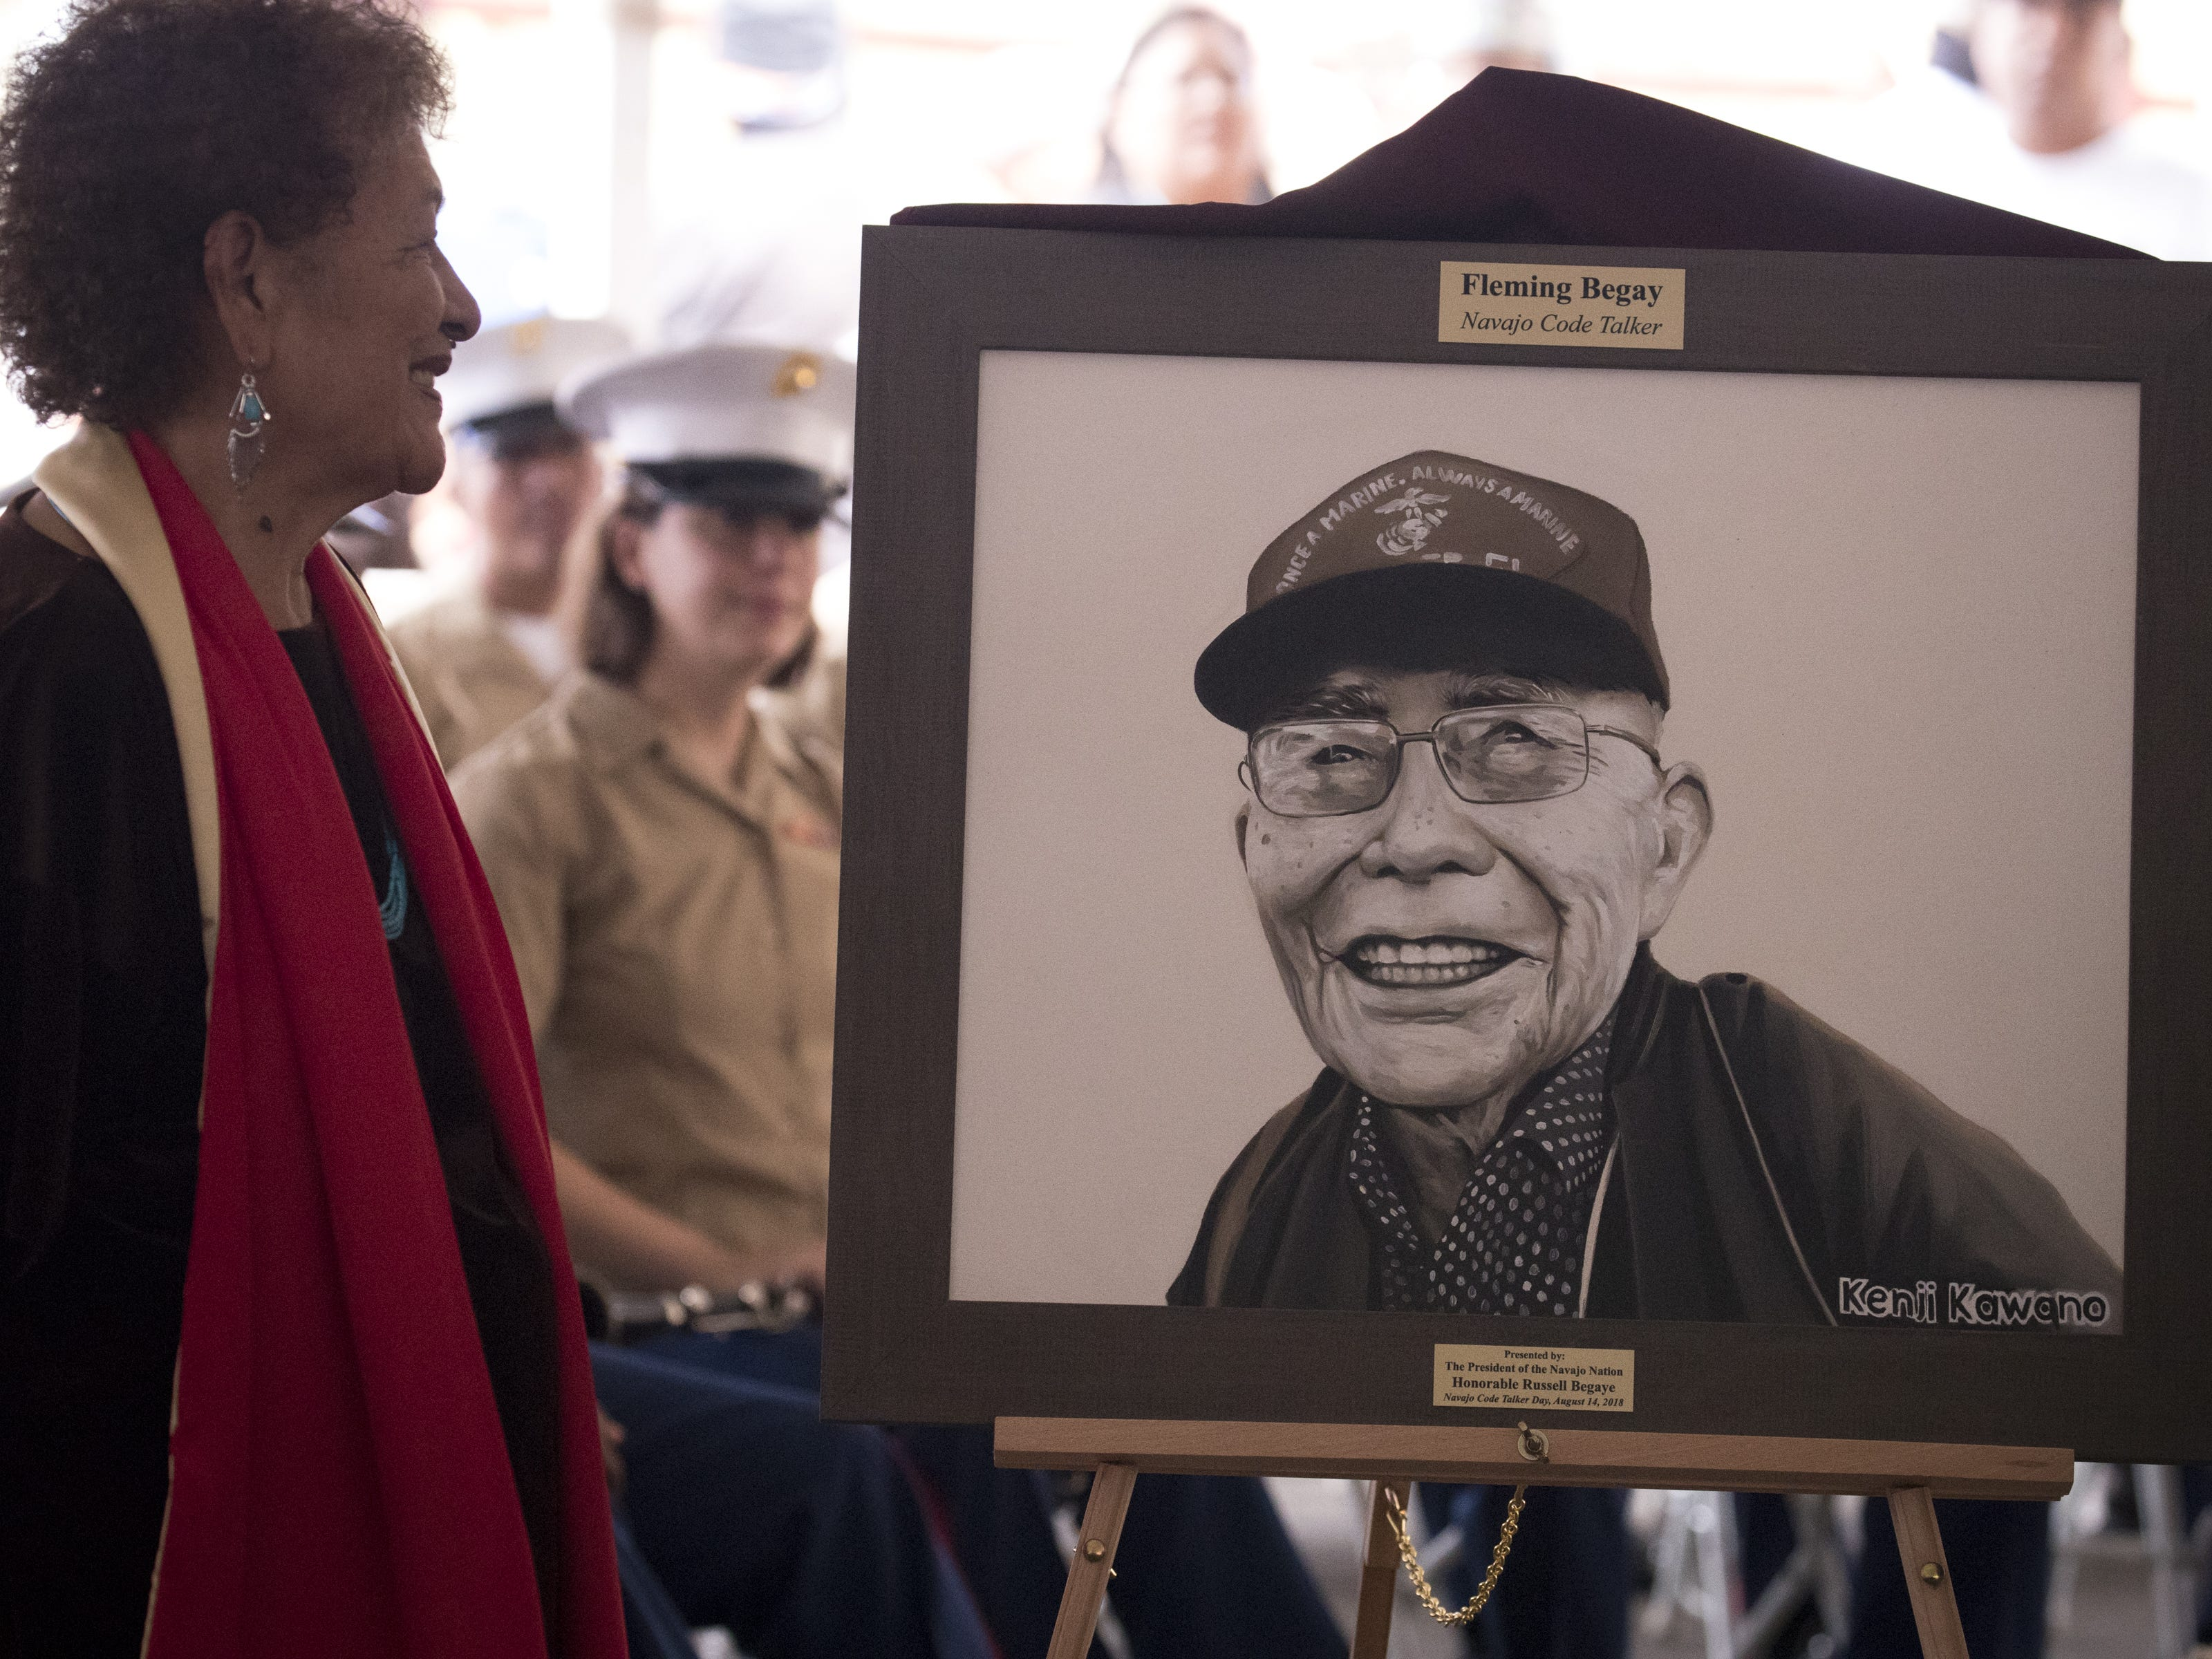 A portrait of Navajo Code Talker Flemming Begaye, Sr. is unveiled during the Navajo Nation Code Talkers Day ceremony on Aug. 14, 2018, at the Veterans Memorial Park in Window Rock.